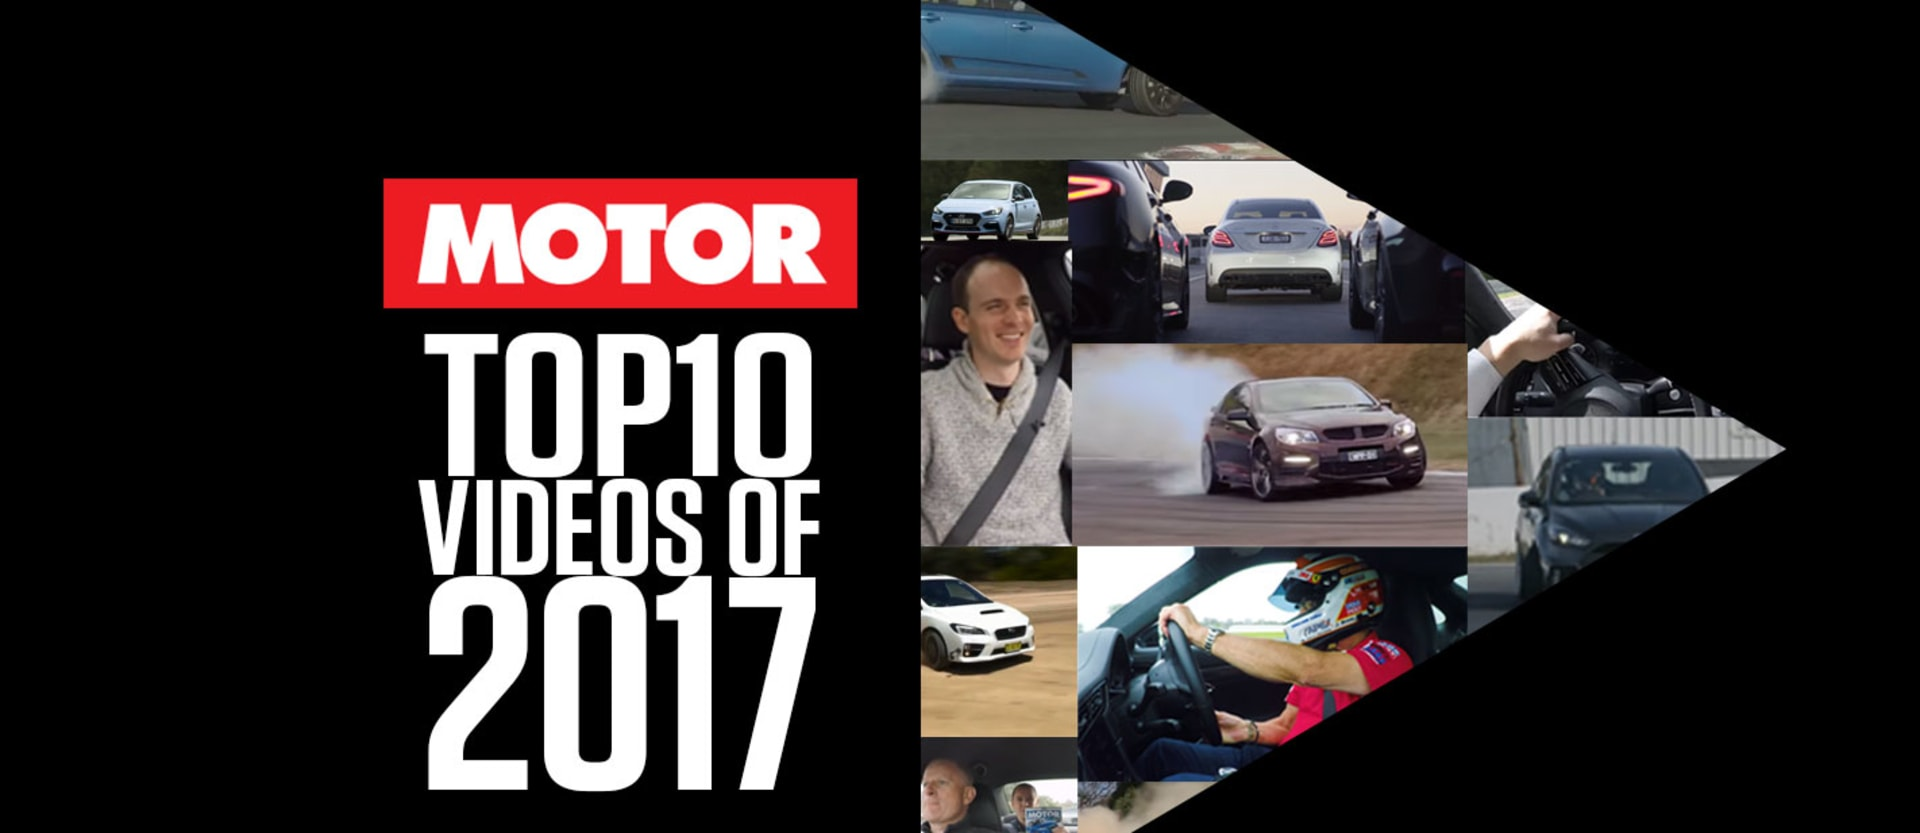 MOTOR top 10 videos 2017 cover nw